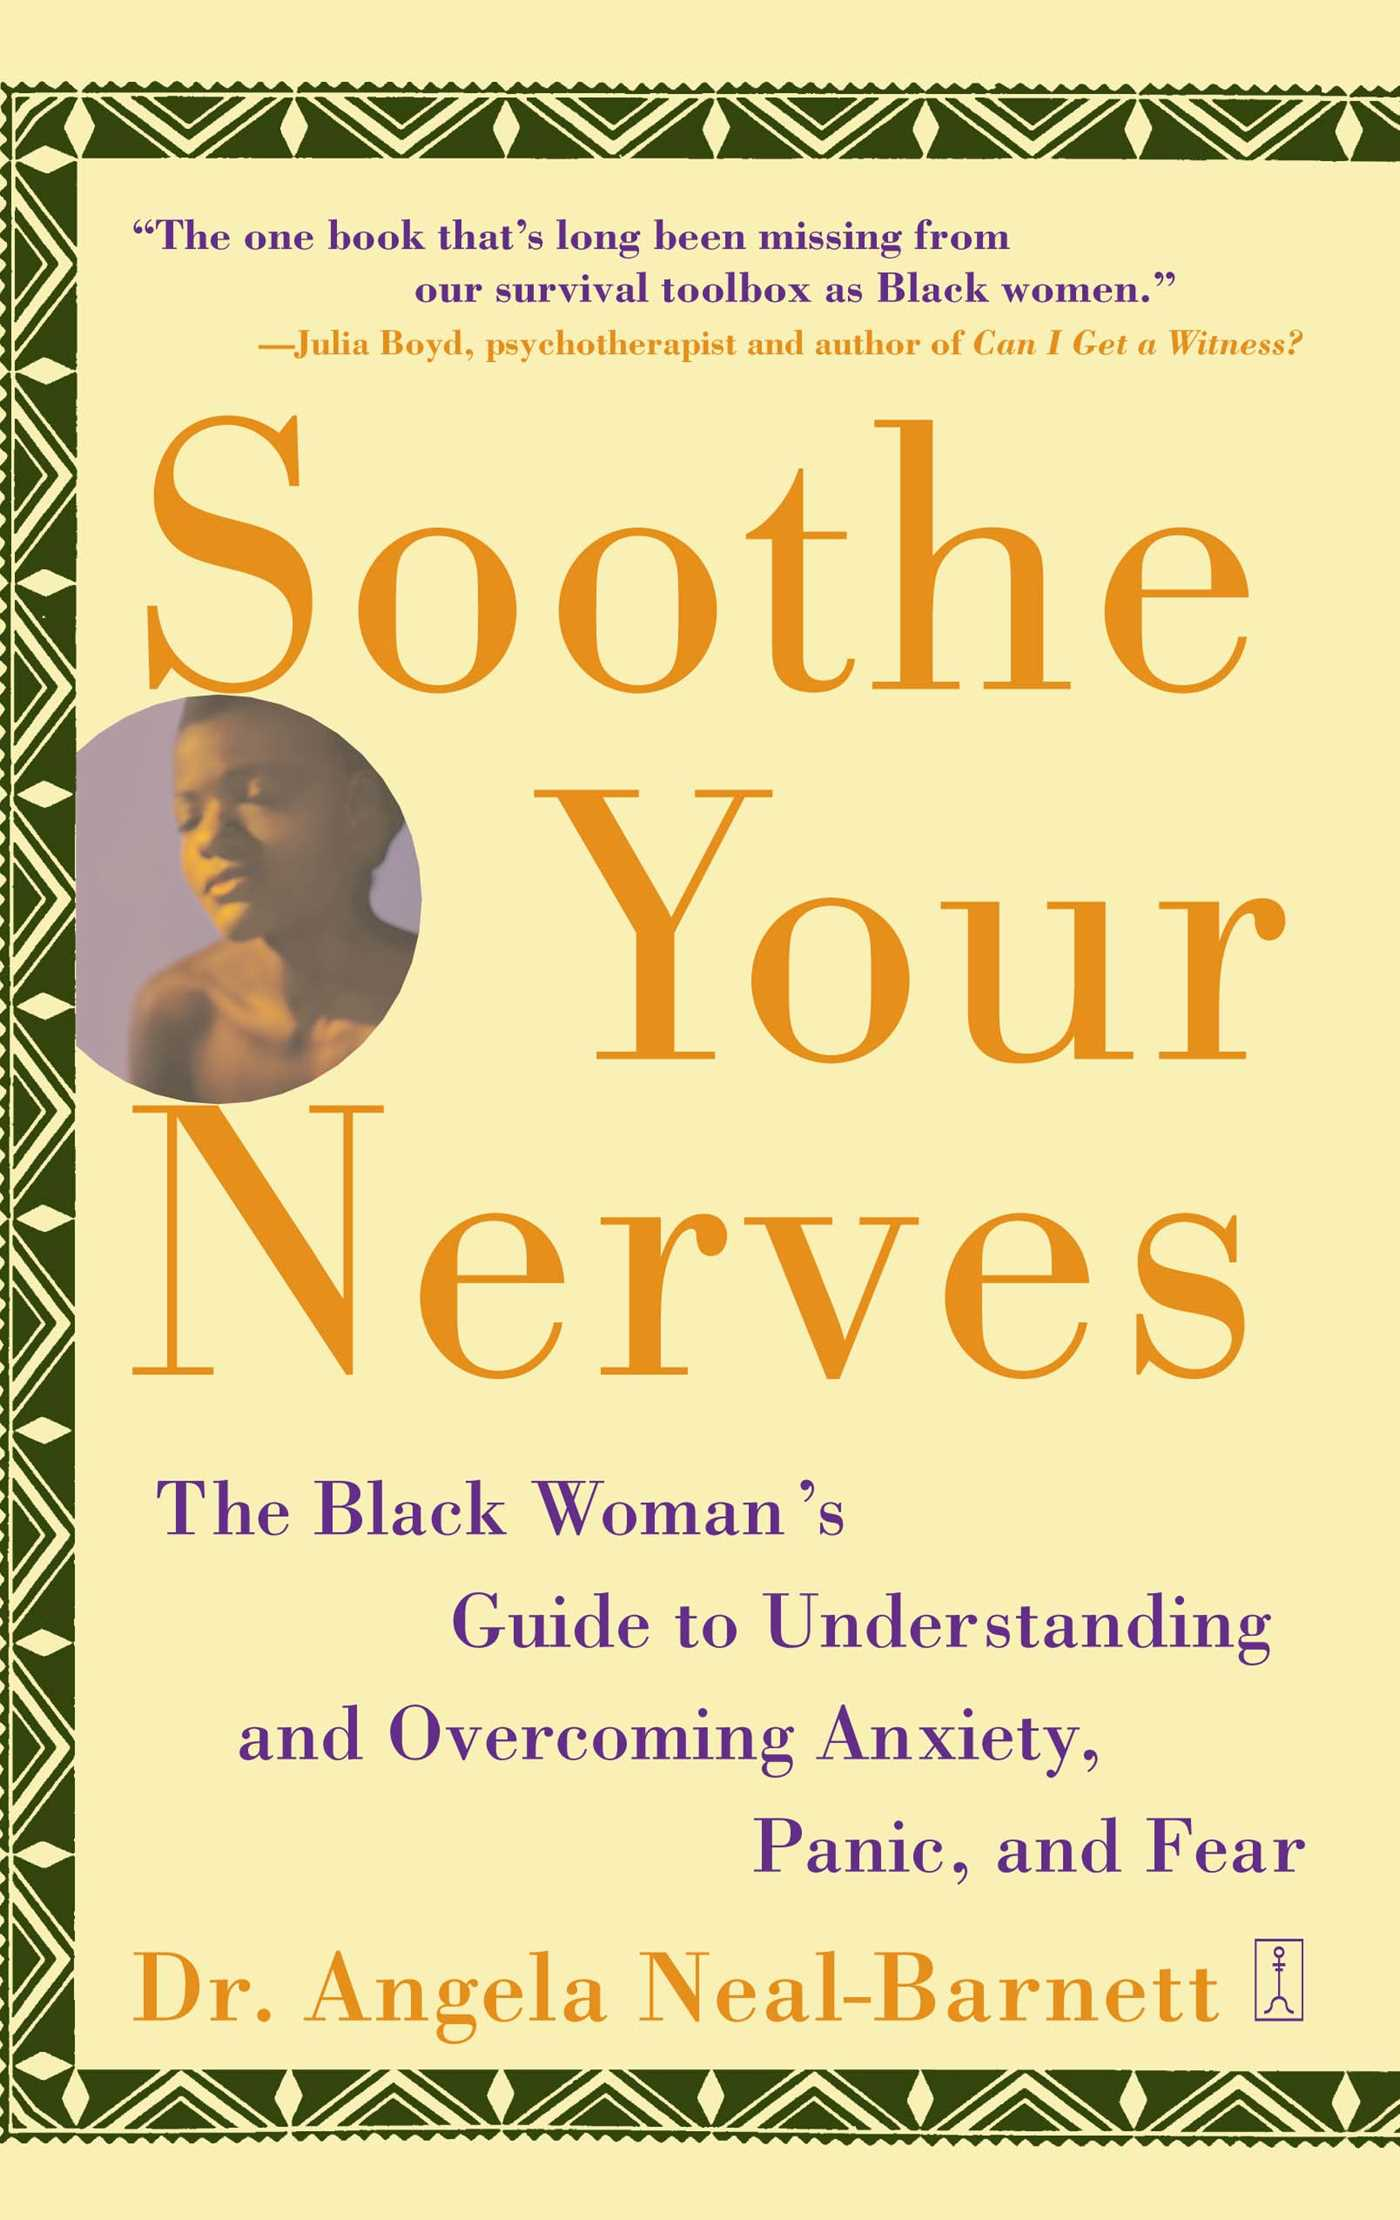 Soothe your nerves 9780743225380 hr